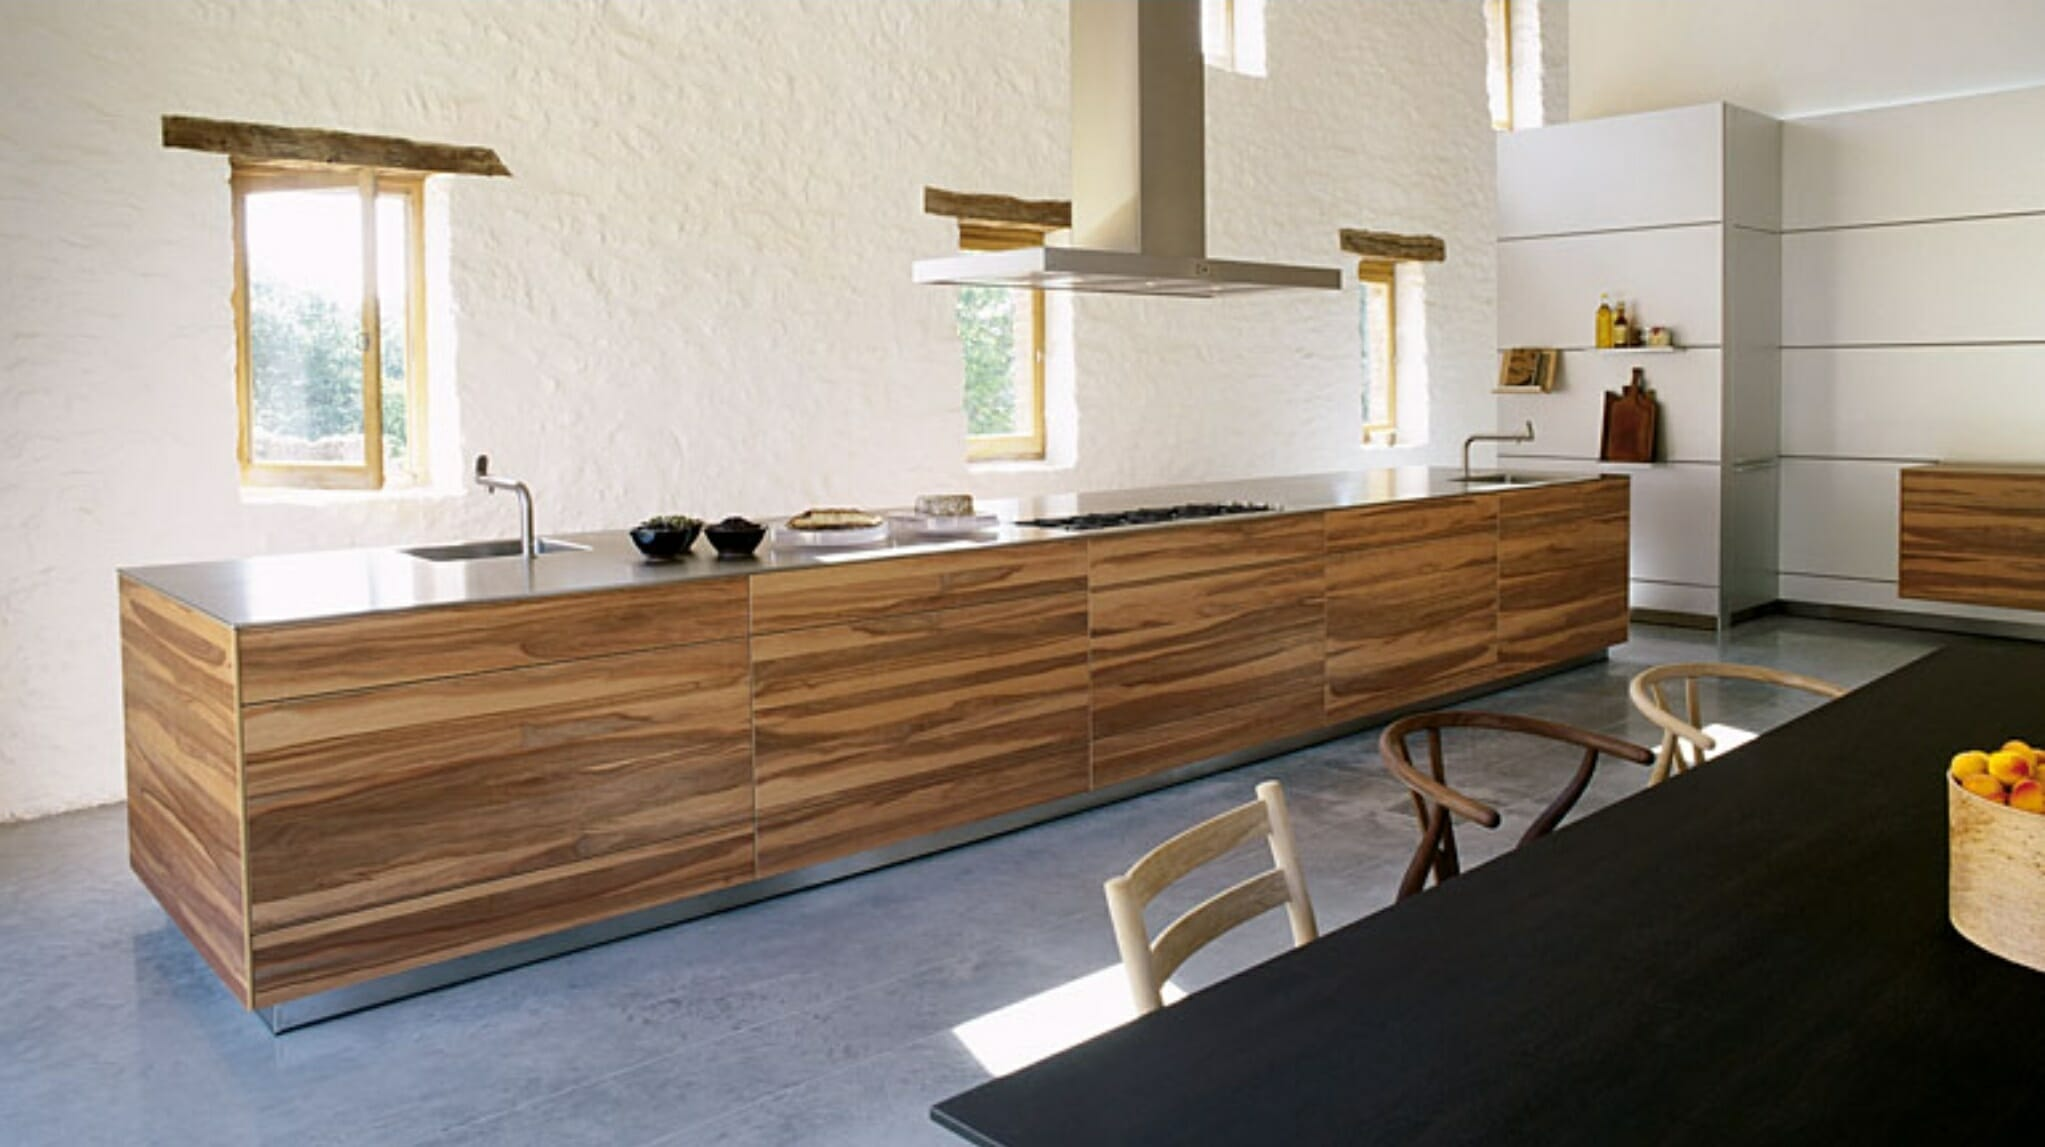 How to Design a Sleek Contemporary Kitchen line